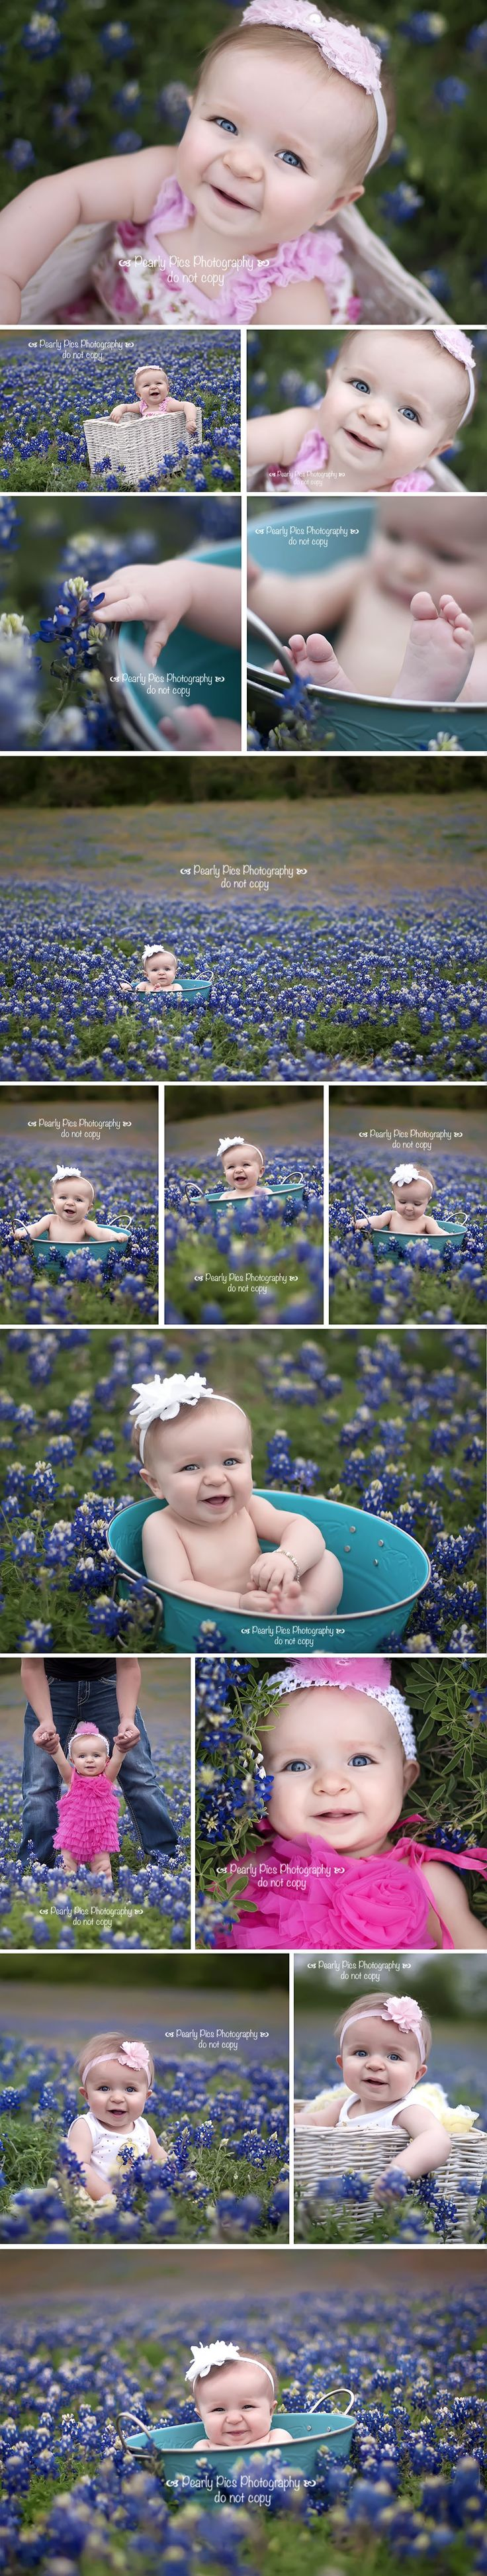 Baby Ella in the bluebonnets! I wish we had fields like this in Indiana!